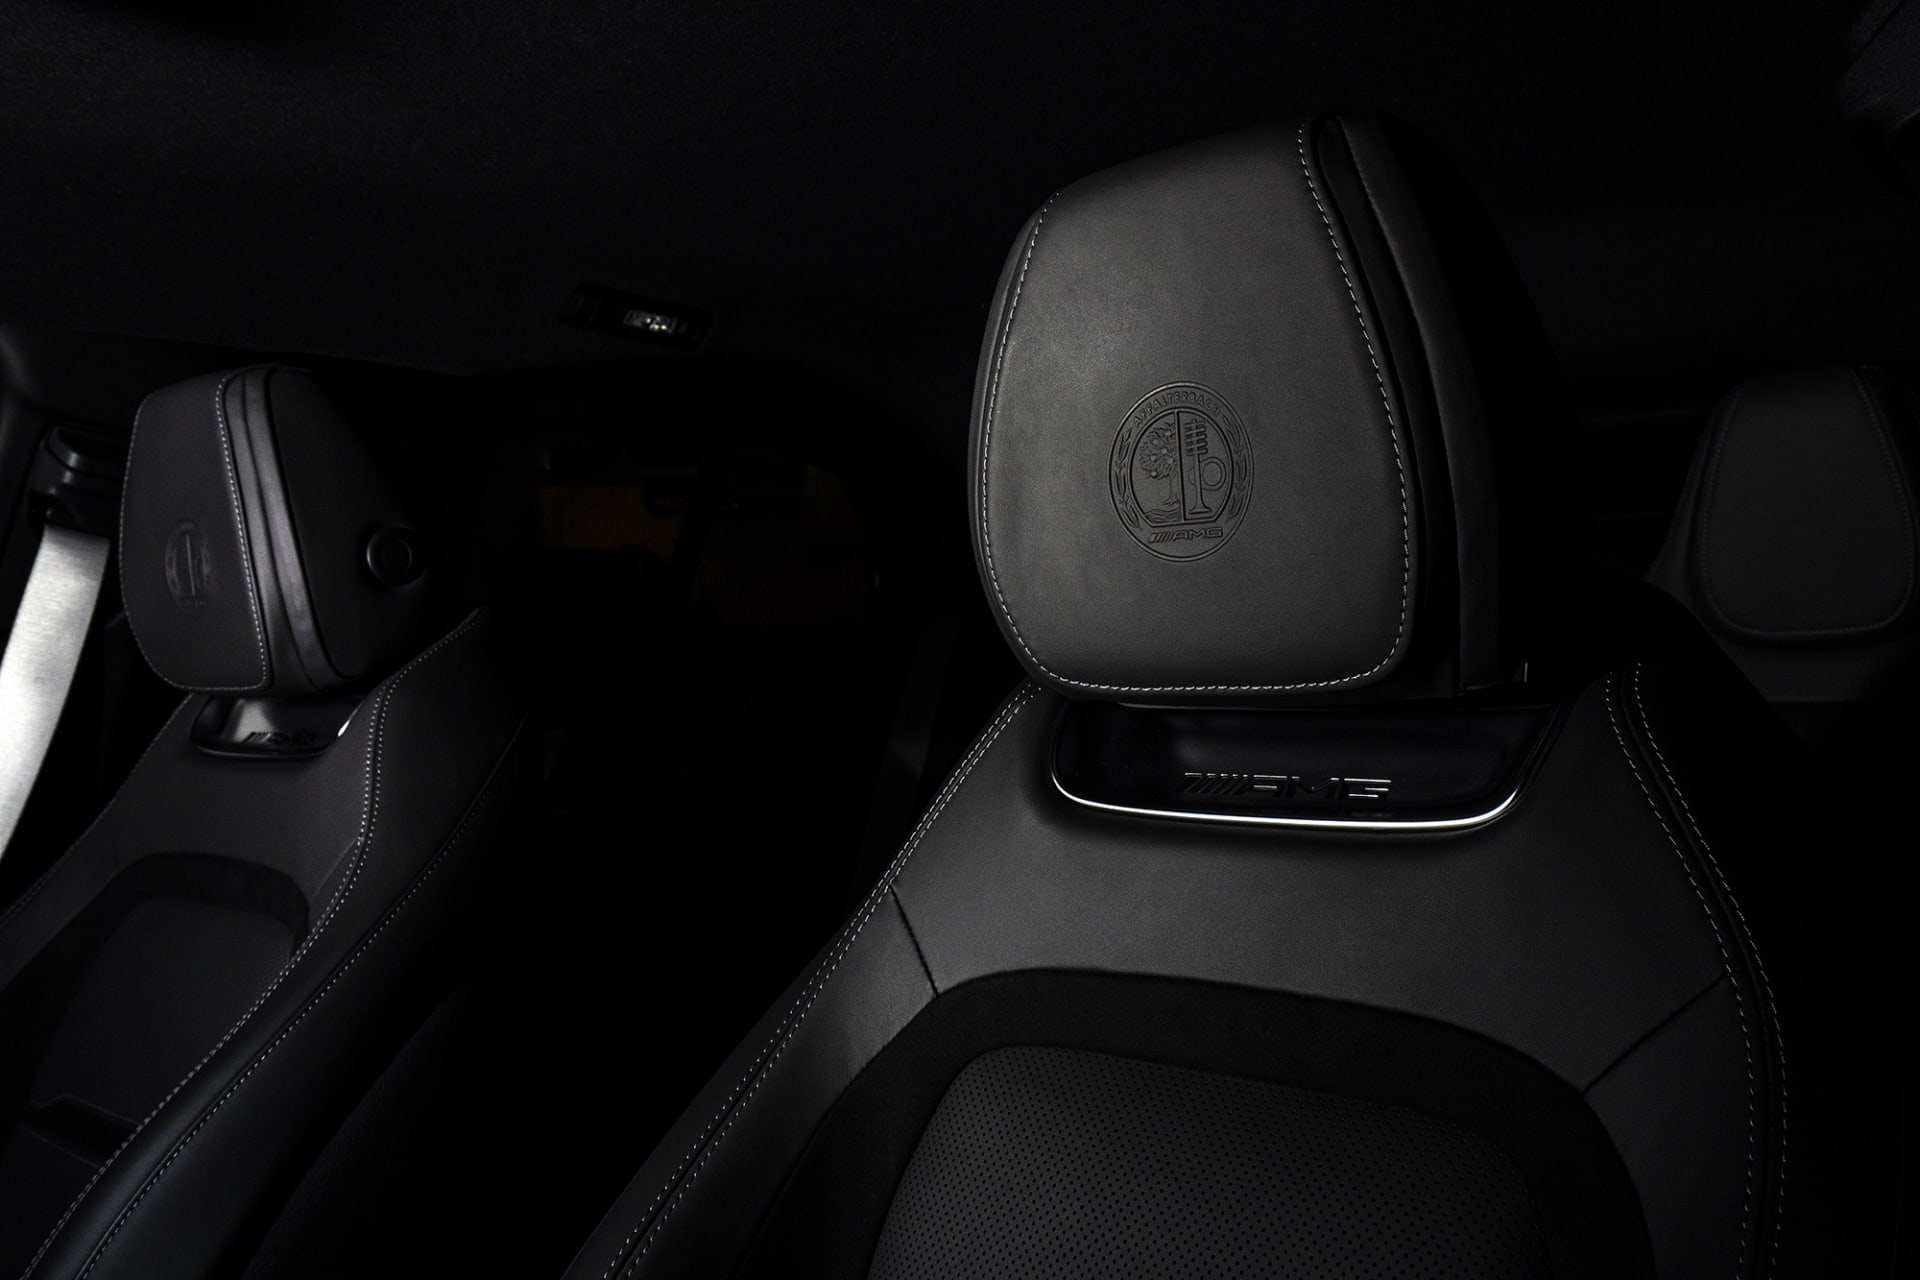 In the headrests, the classic AMG emblem is embossed.